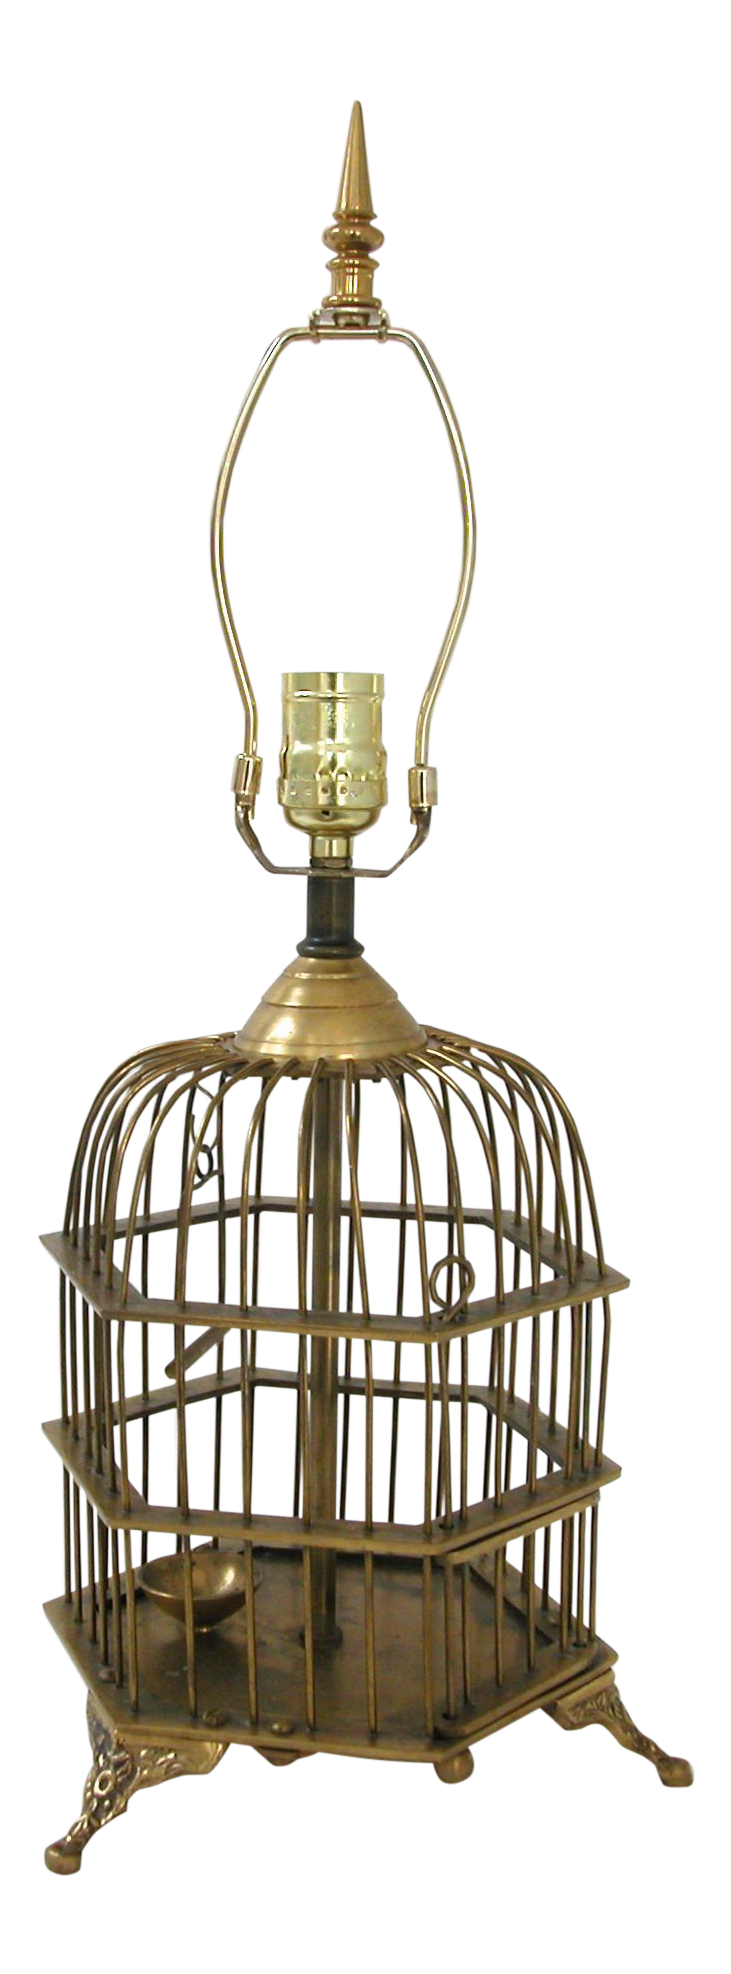 com shipping and lamp free cool copper fittings fixtures diy light pinteres hardware buy looking birds pendant red restoration lighting on aliexpress fixture birdcage good get